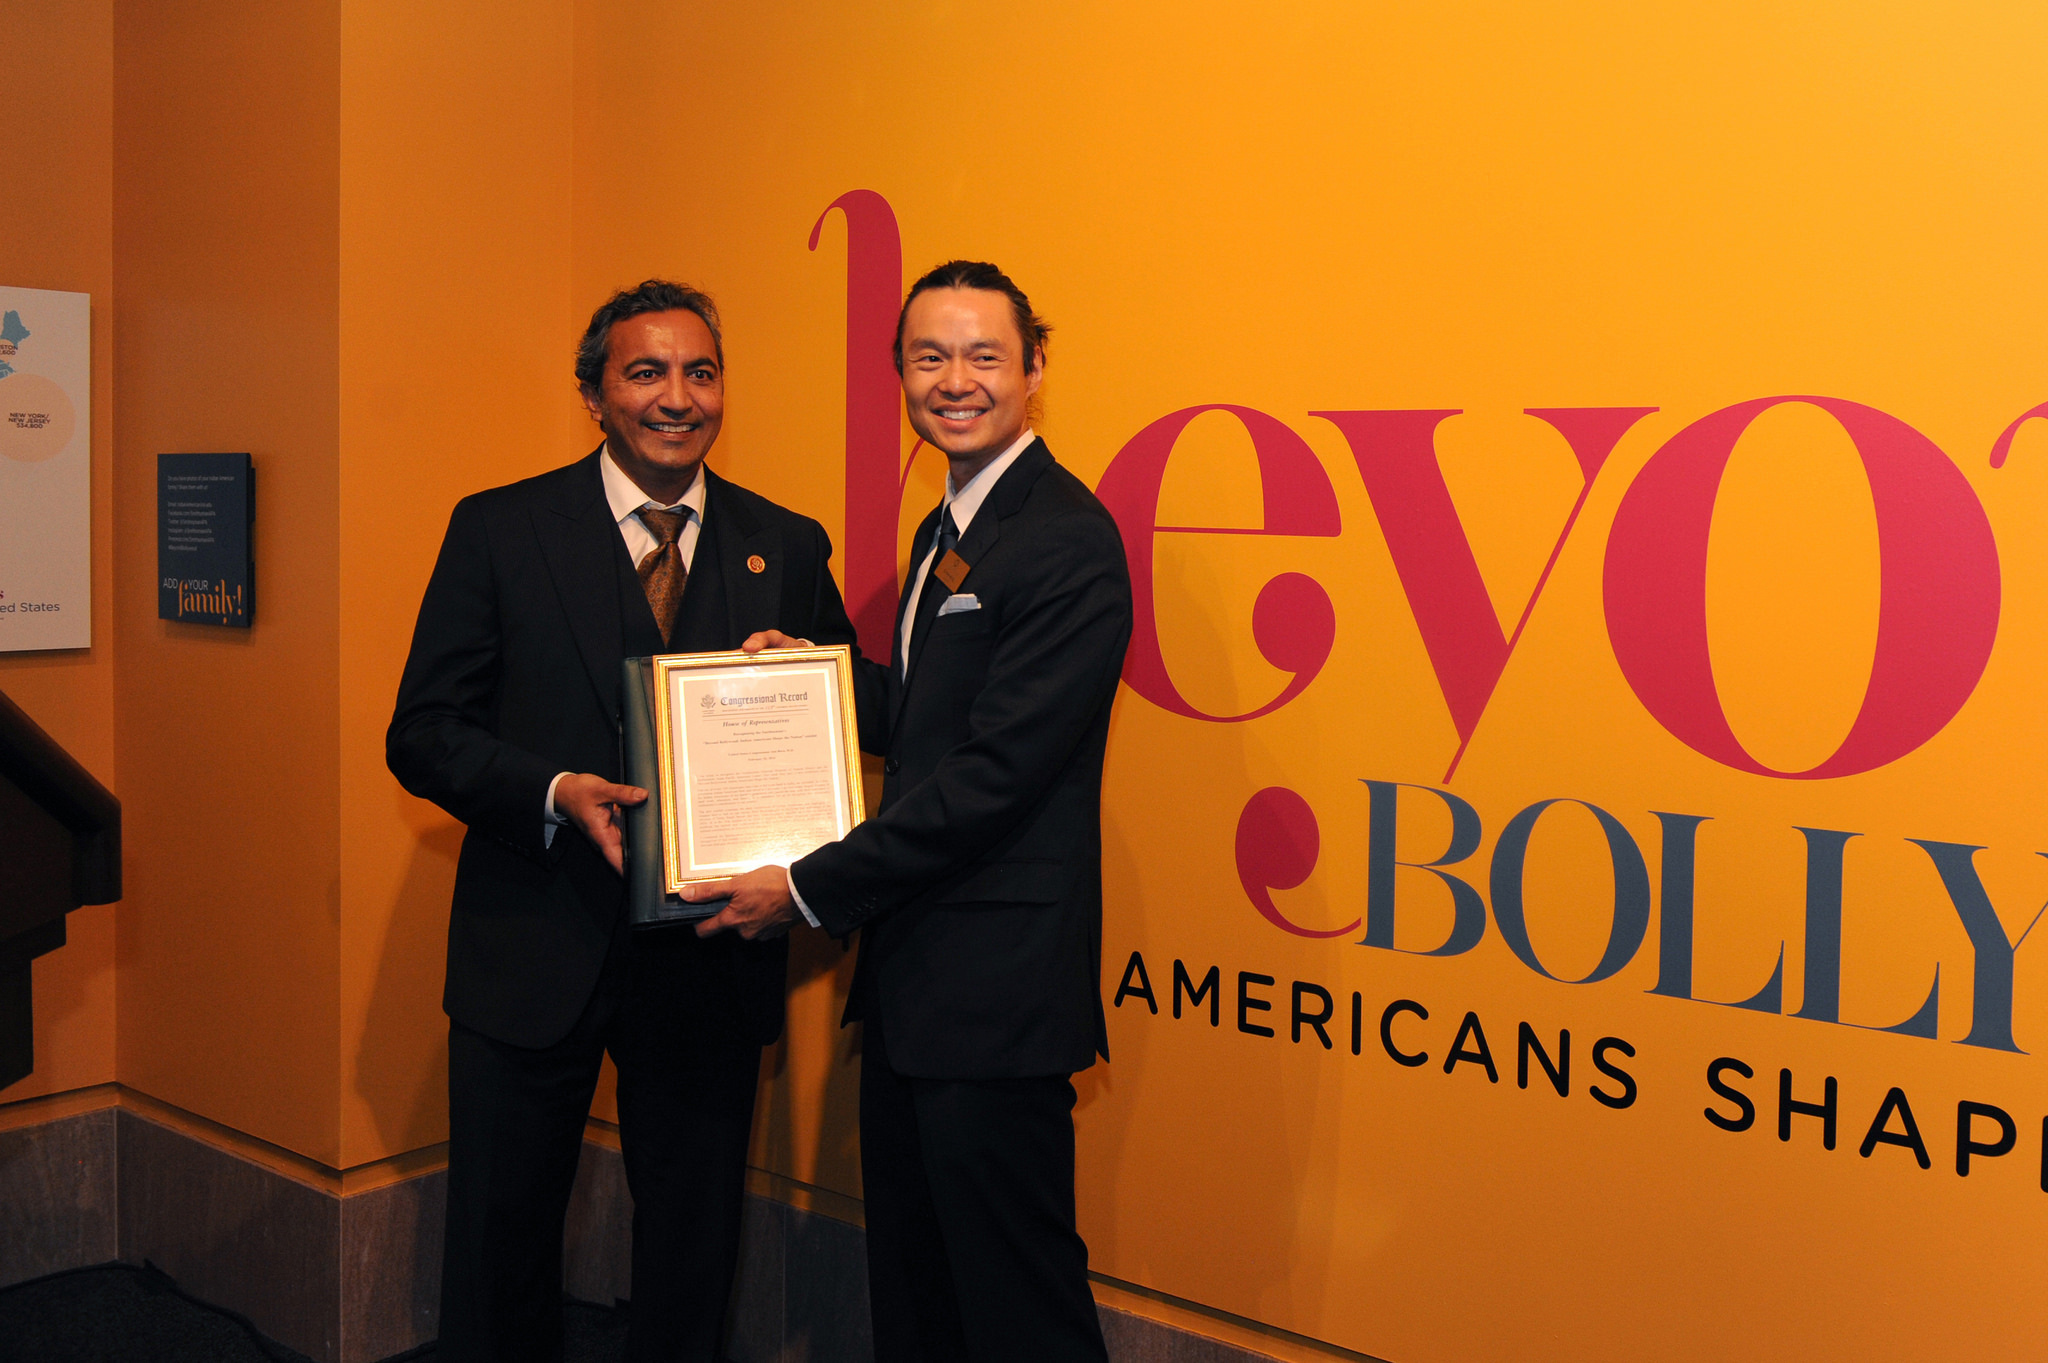 Congressman Ami Bera presents the US Congress's recognition of Beyond Bollywood: Indian Americans Shape the Nation</i> exhibition into the country's historical record.